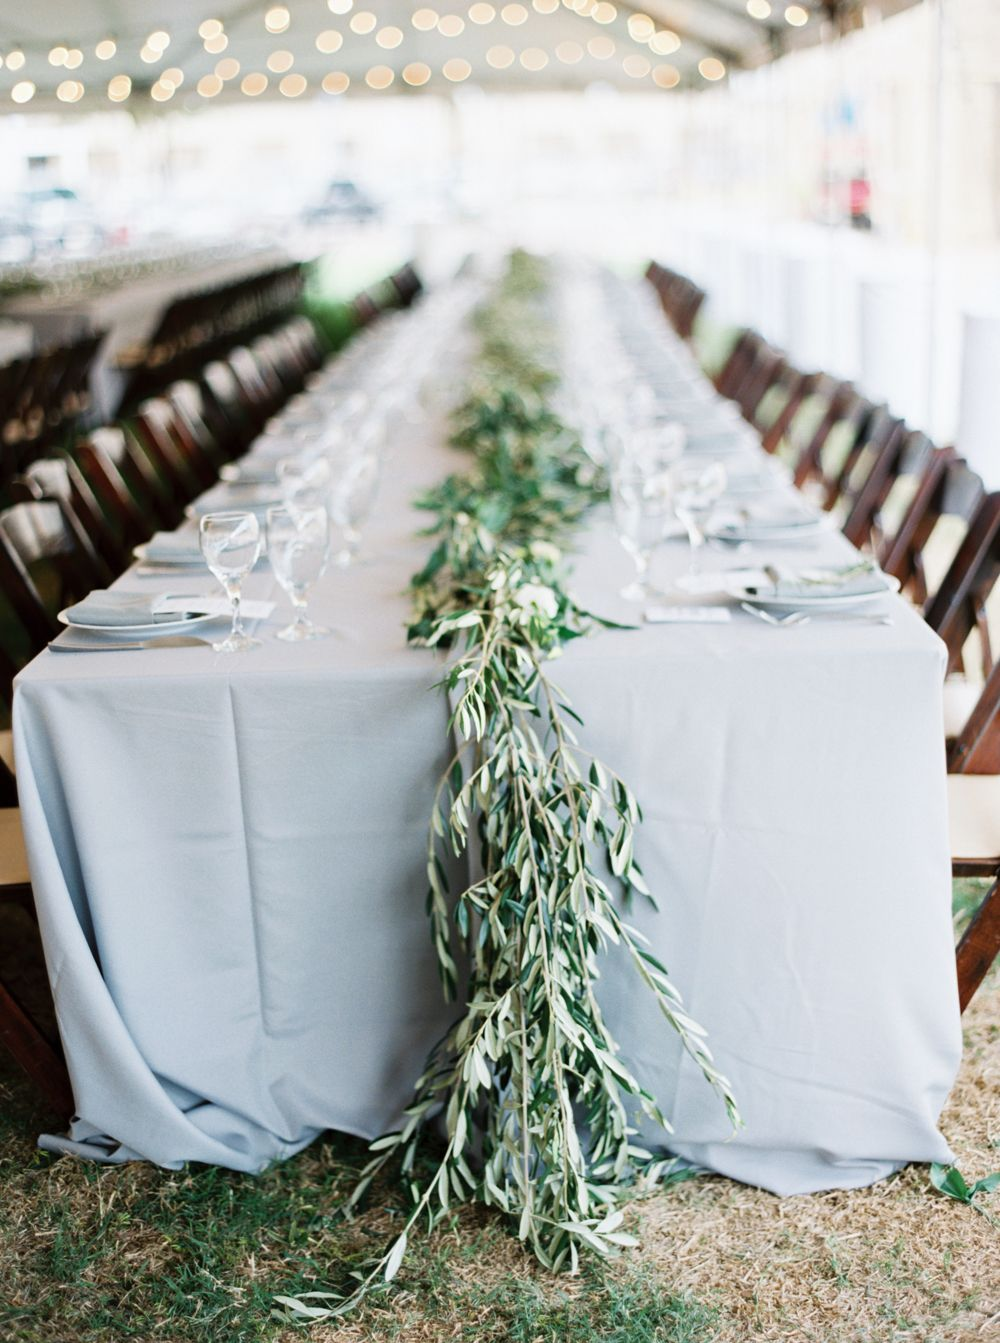 Wedding Table Centerpieces.15 Best Greenery Wedding Centerpieces Green Centerpieces For Wedding